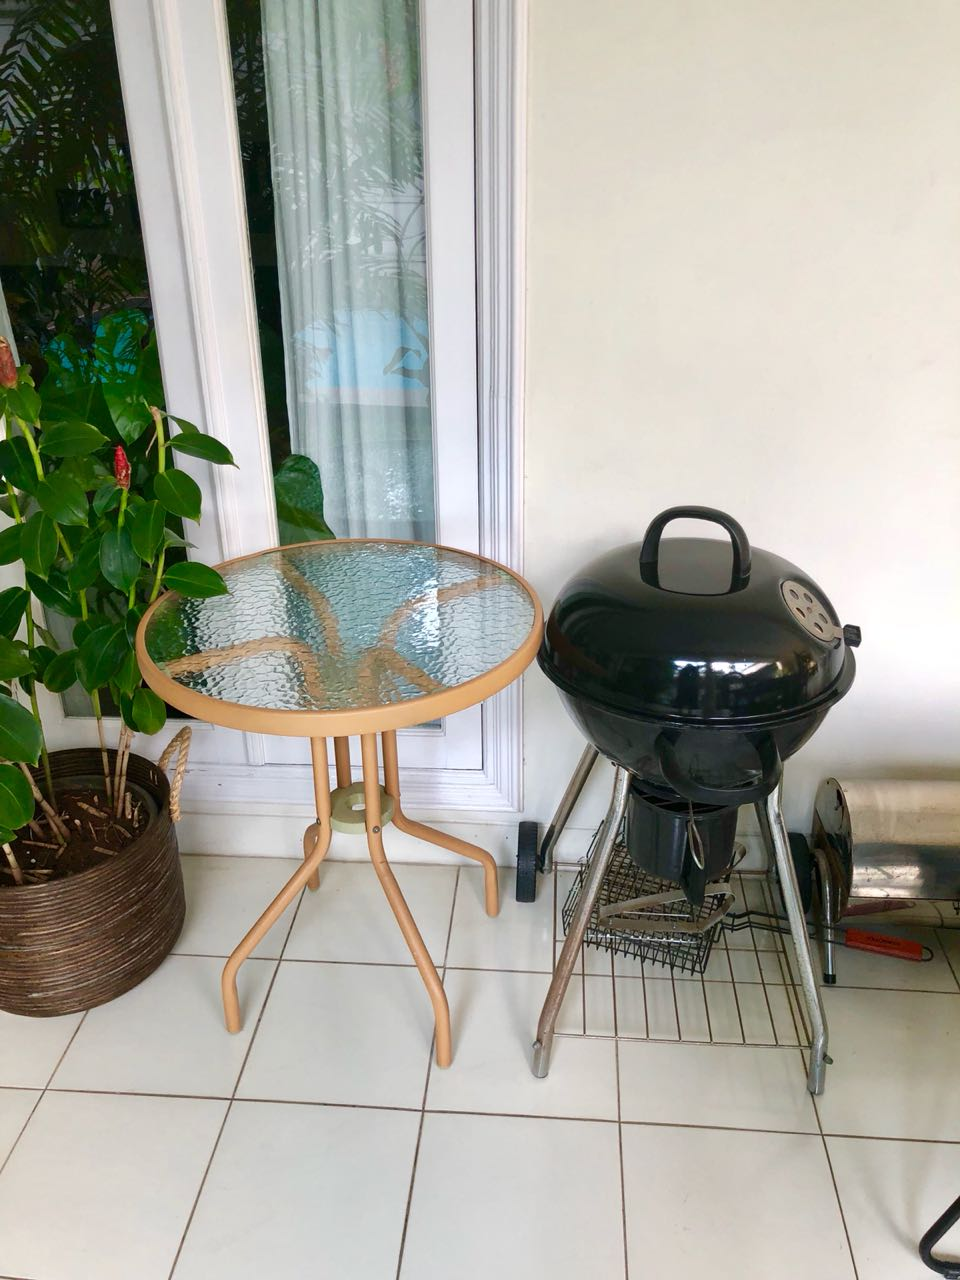 Ace Hardware Grill and Side Table